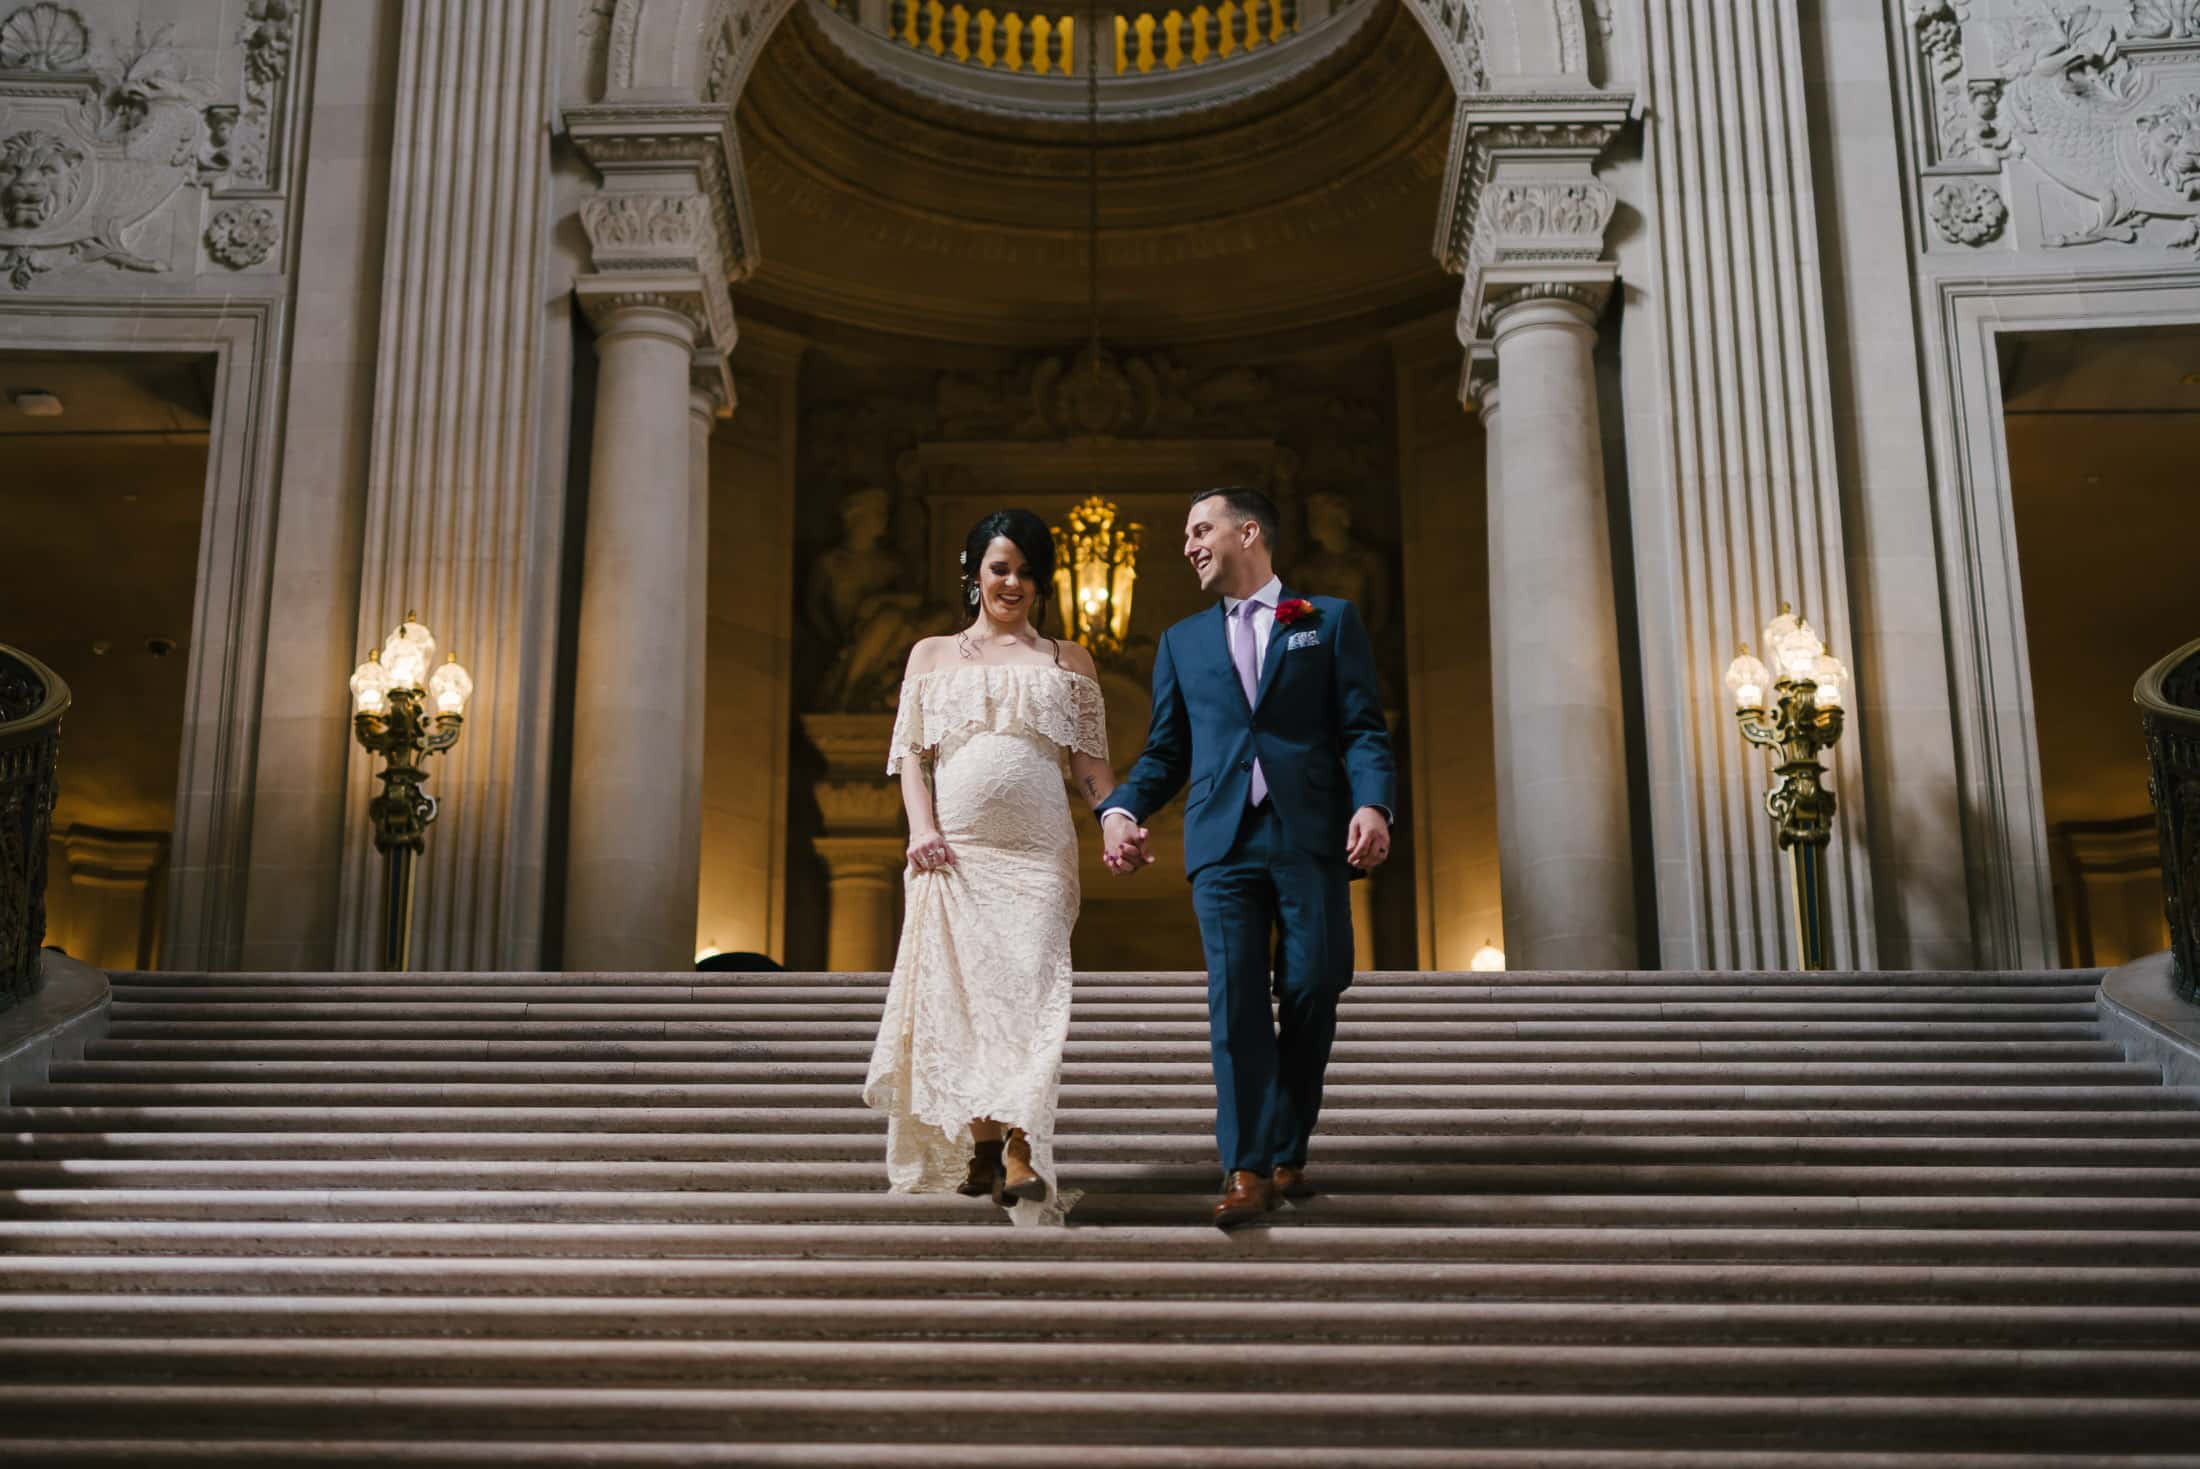 San Francisco City Hall Wedding Stairs